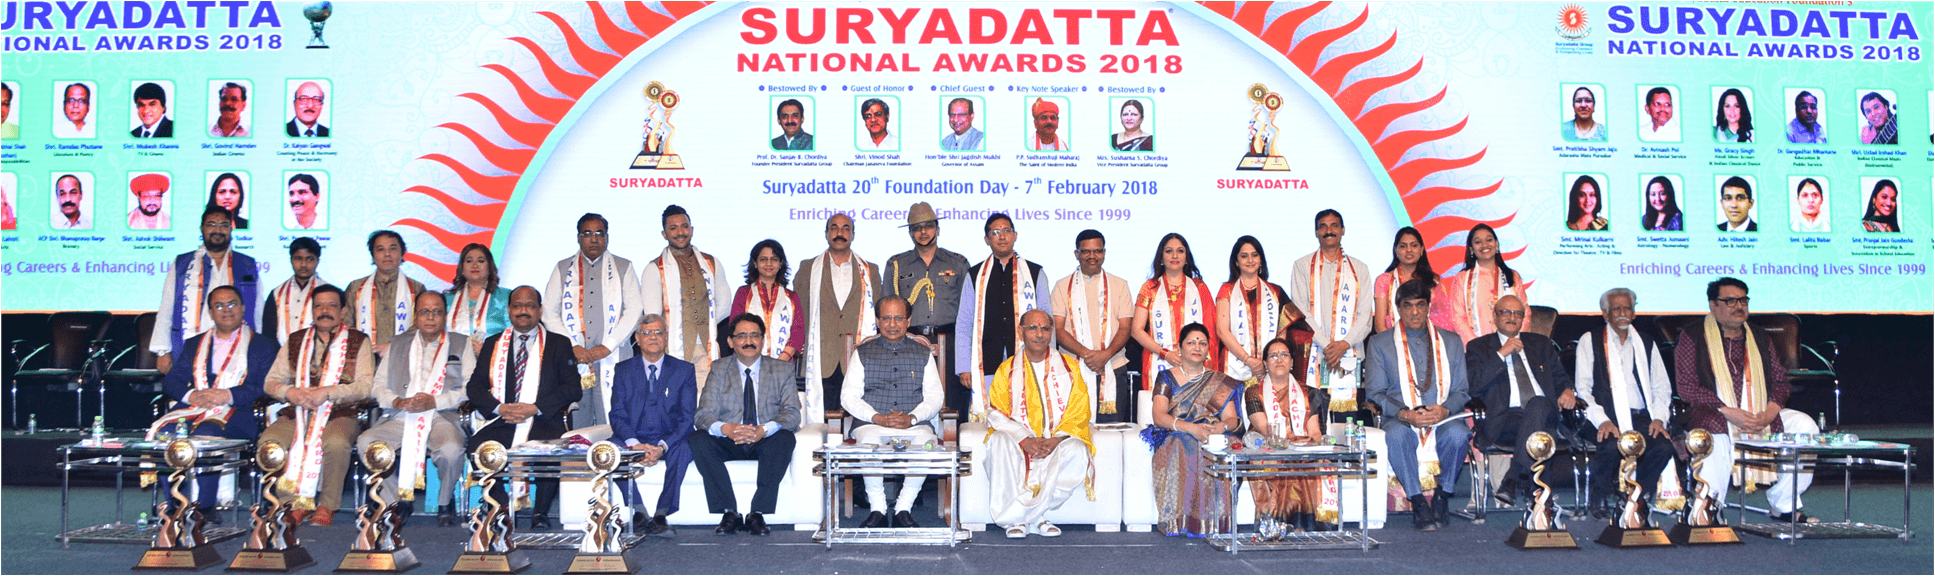 Suryadatta National Awards 2018